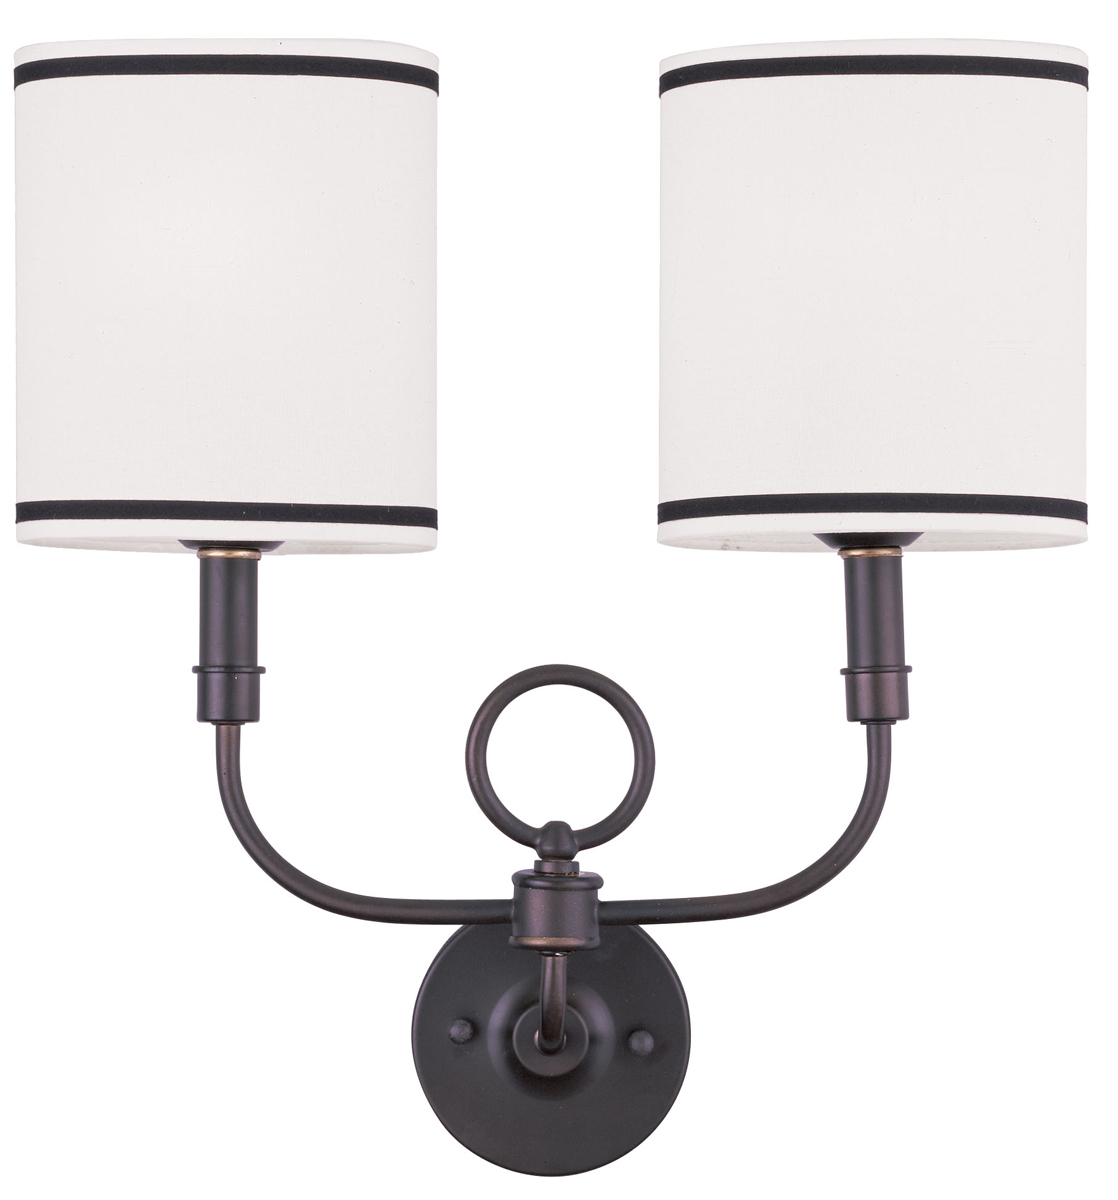 Wall Sconces 2 Lights : Livex Lighting (9122) Wall Sconces 2 Light ADA Compliant Wall Sconce shown in Bronze